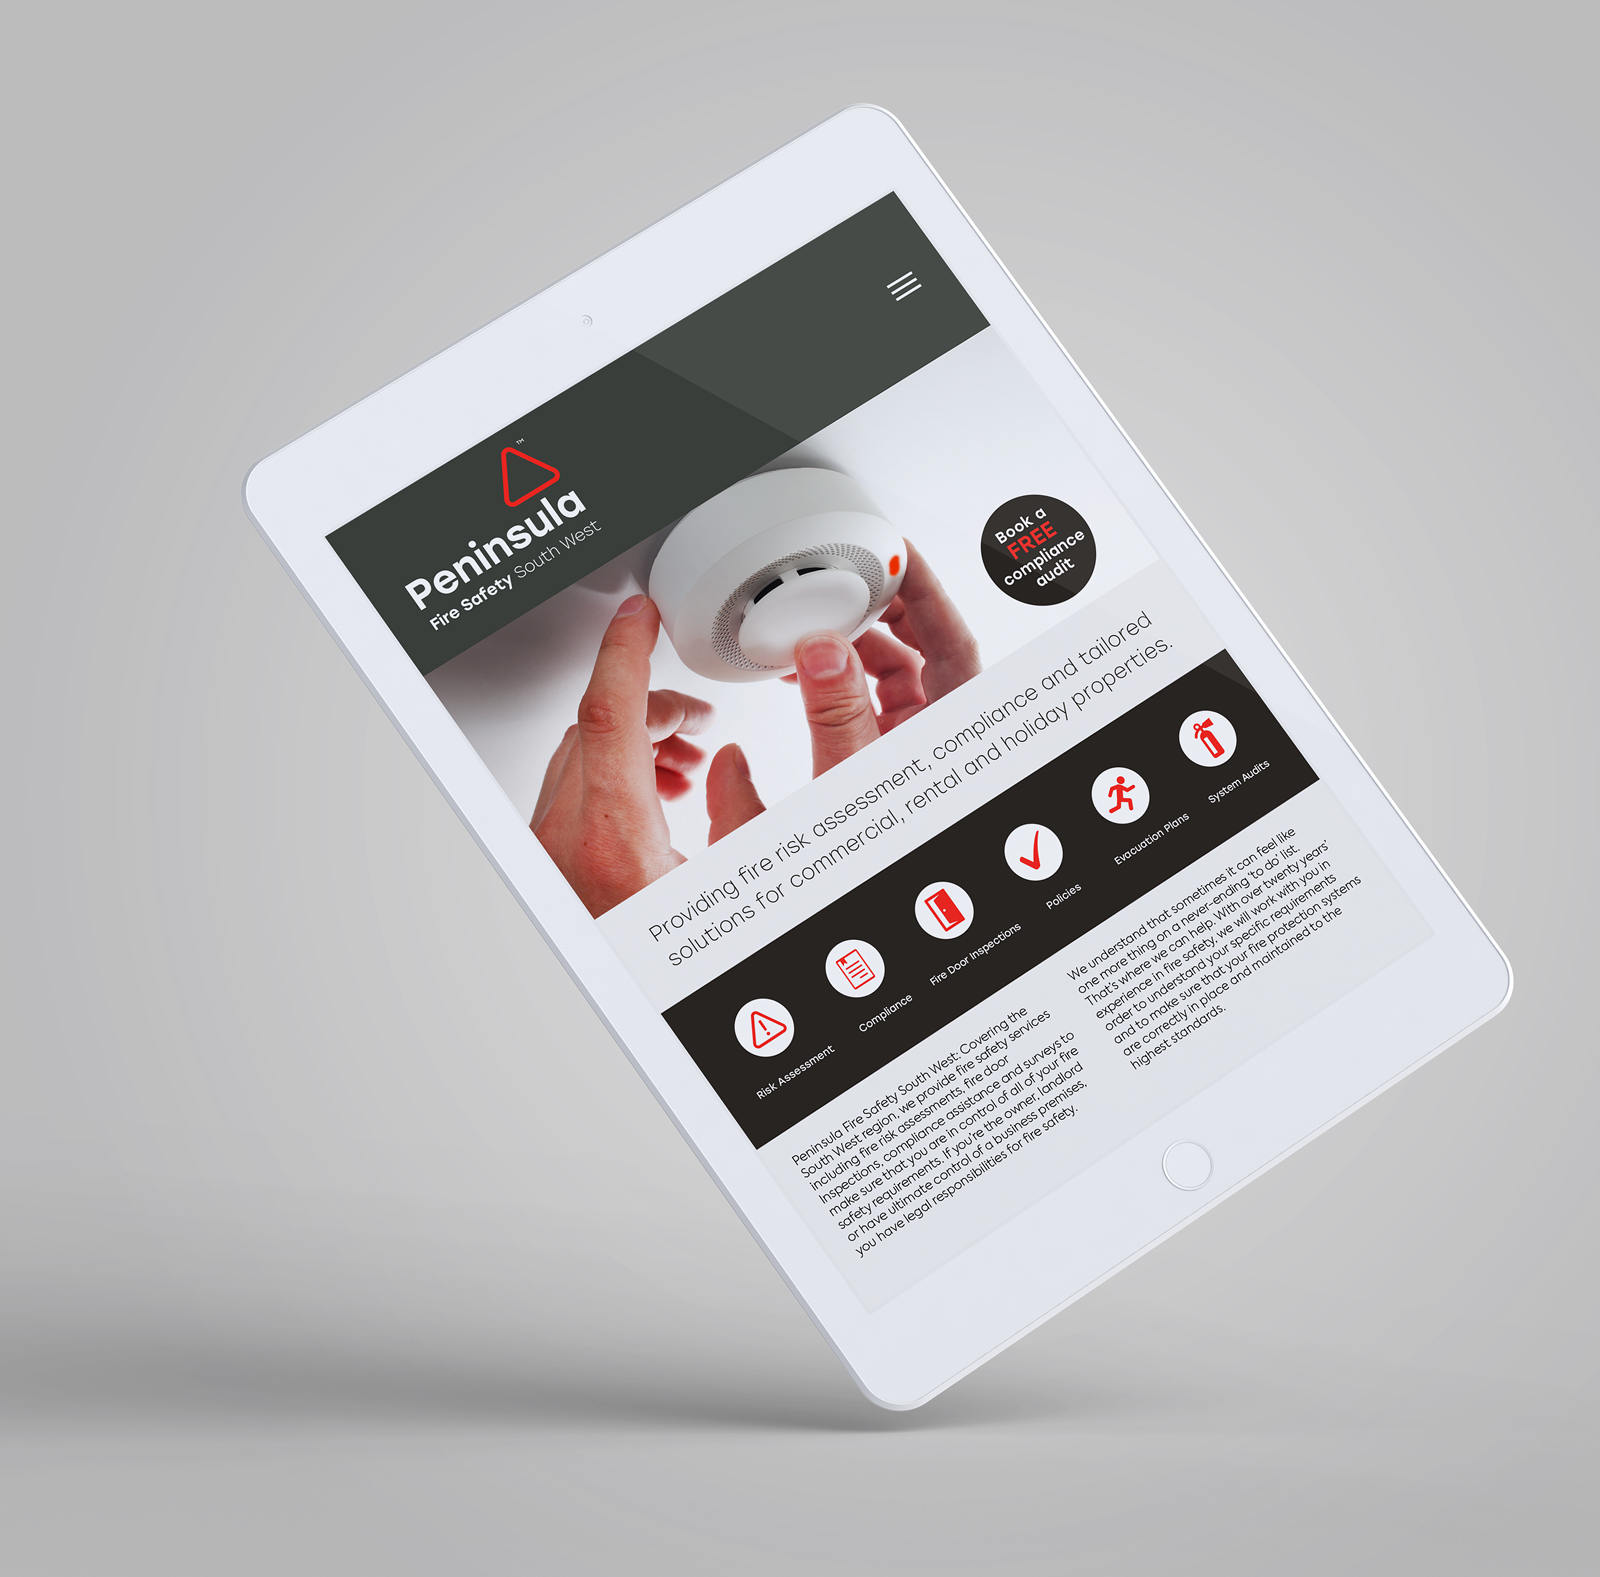 website design for commercial services and businesses